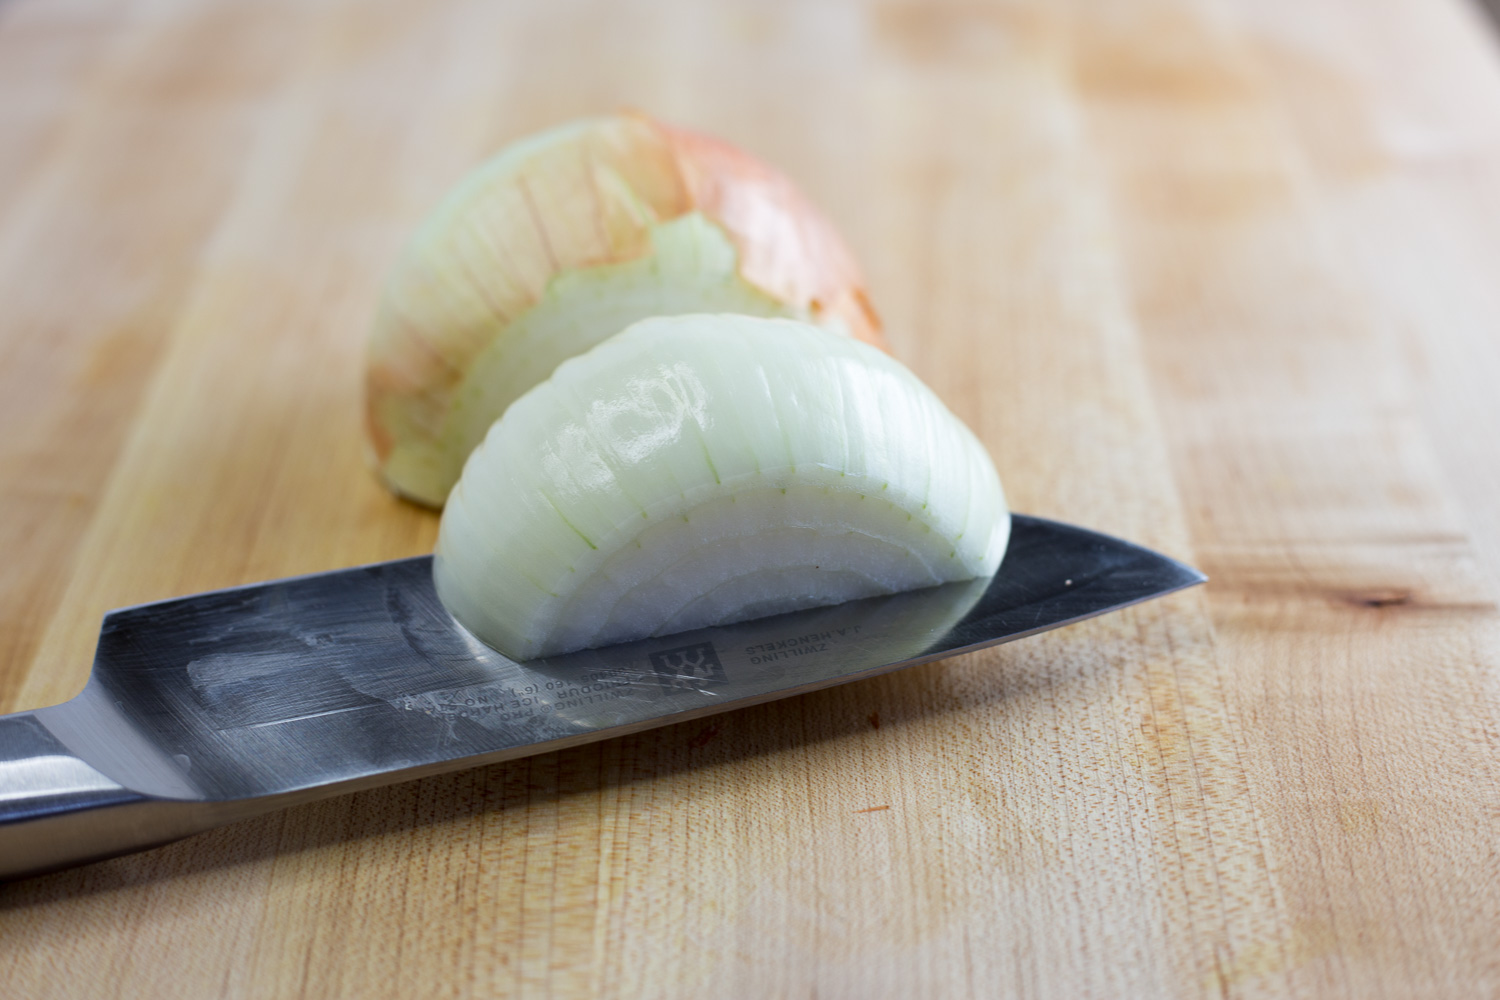 Learn to properly dice an onion with no tears!